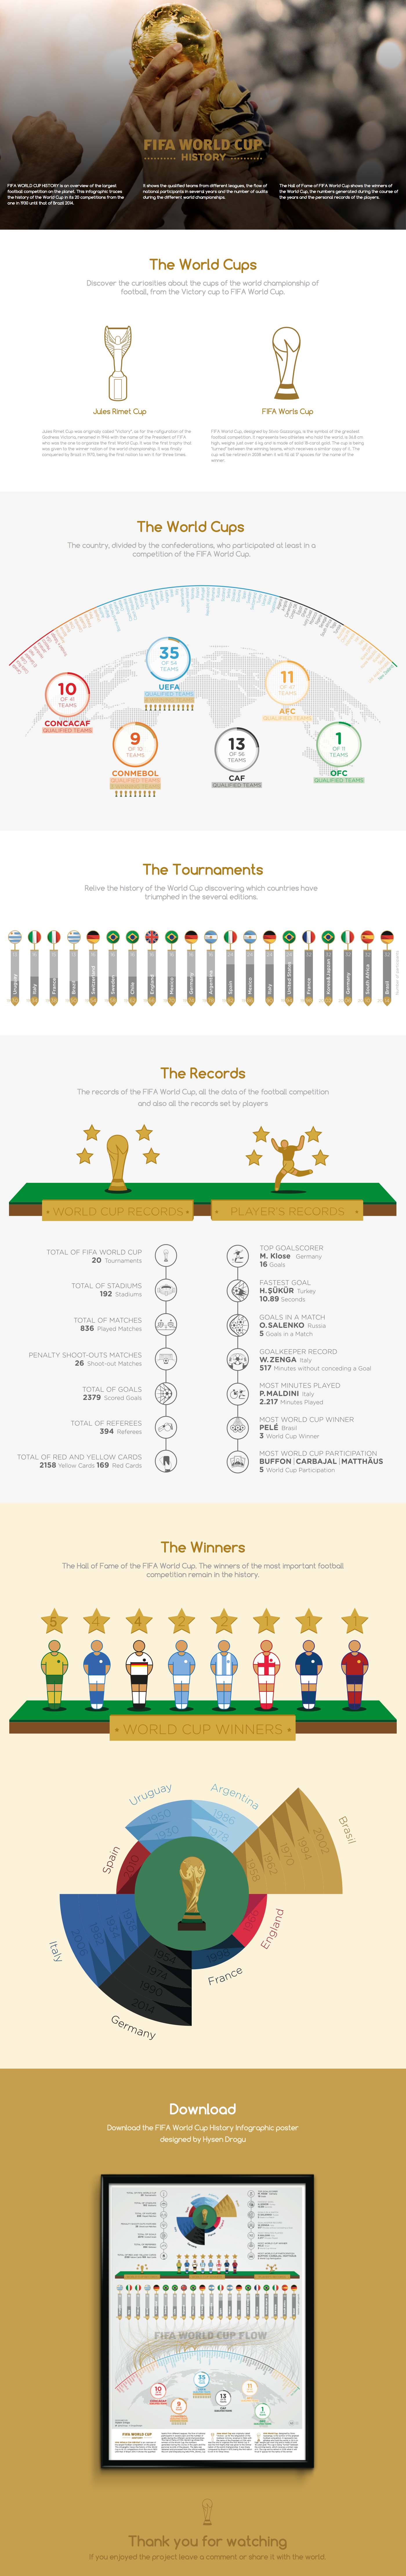 FIFA world cup infographic FIFA World Cup World Cup Infographic poster